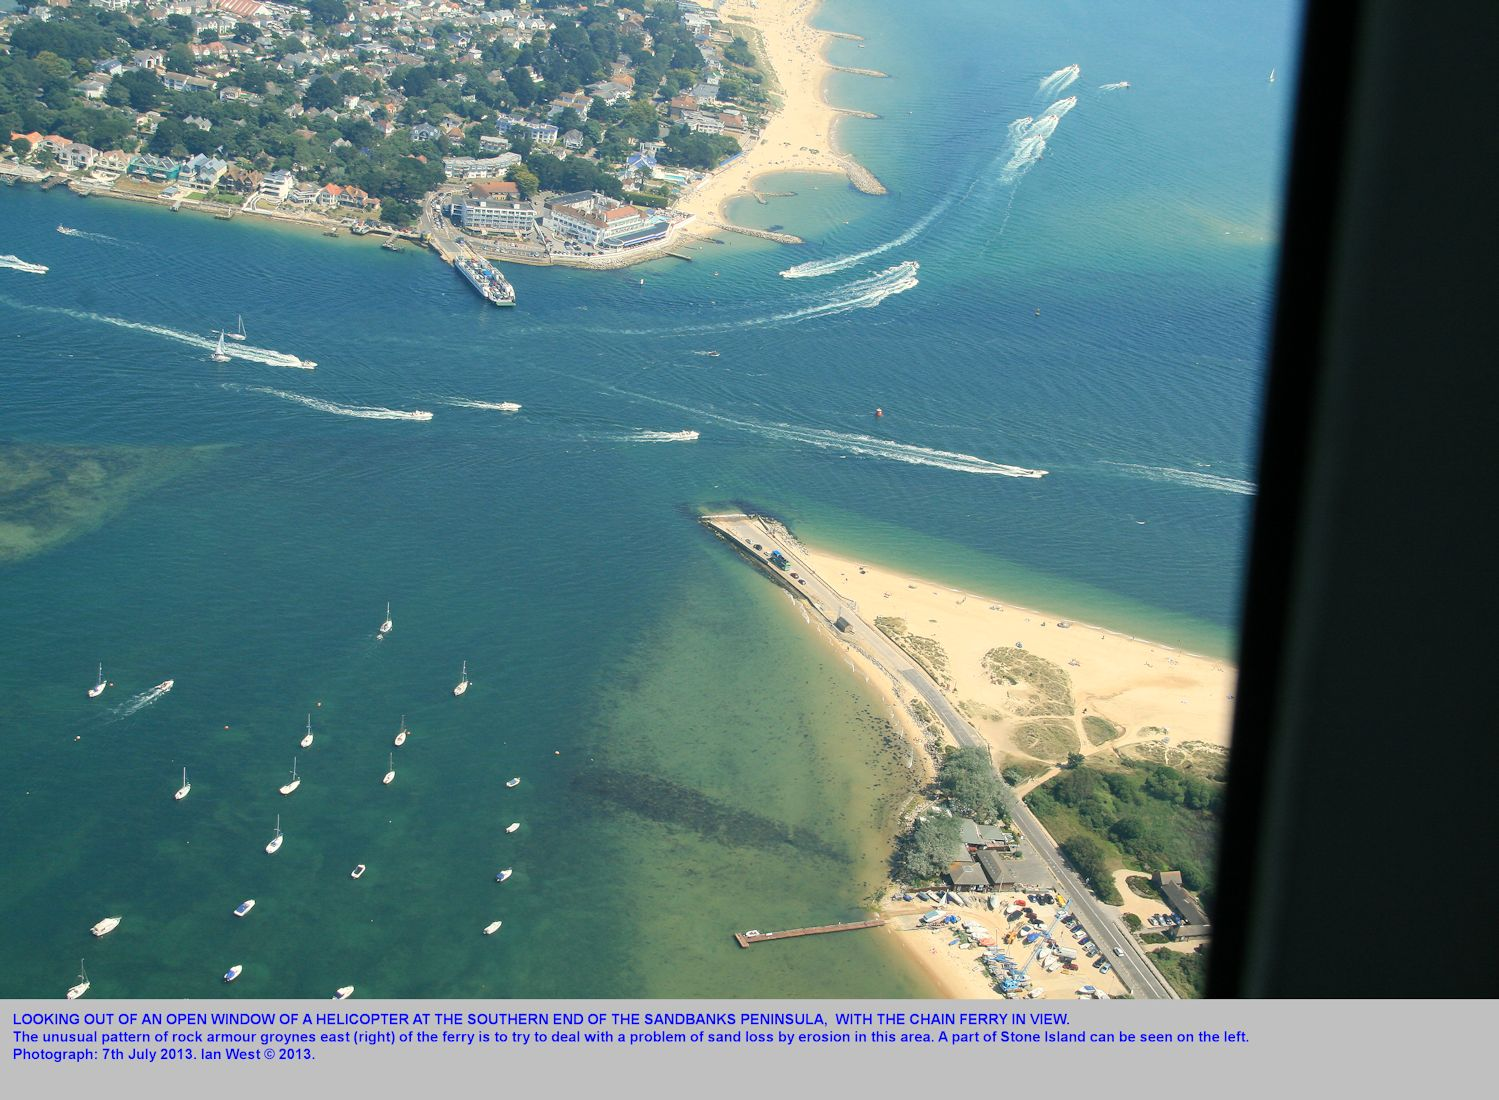 A helicopter view of the channel at the Chain Ferry, southern Sandbanks Peninsula, Dorset, 7th July 2013